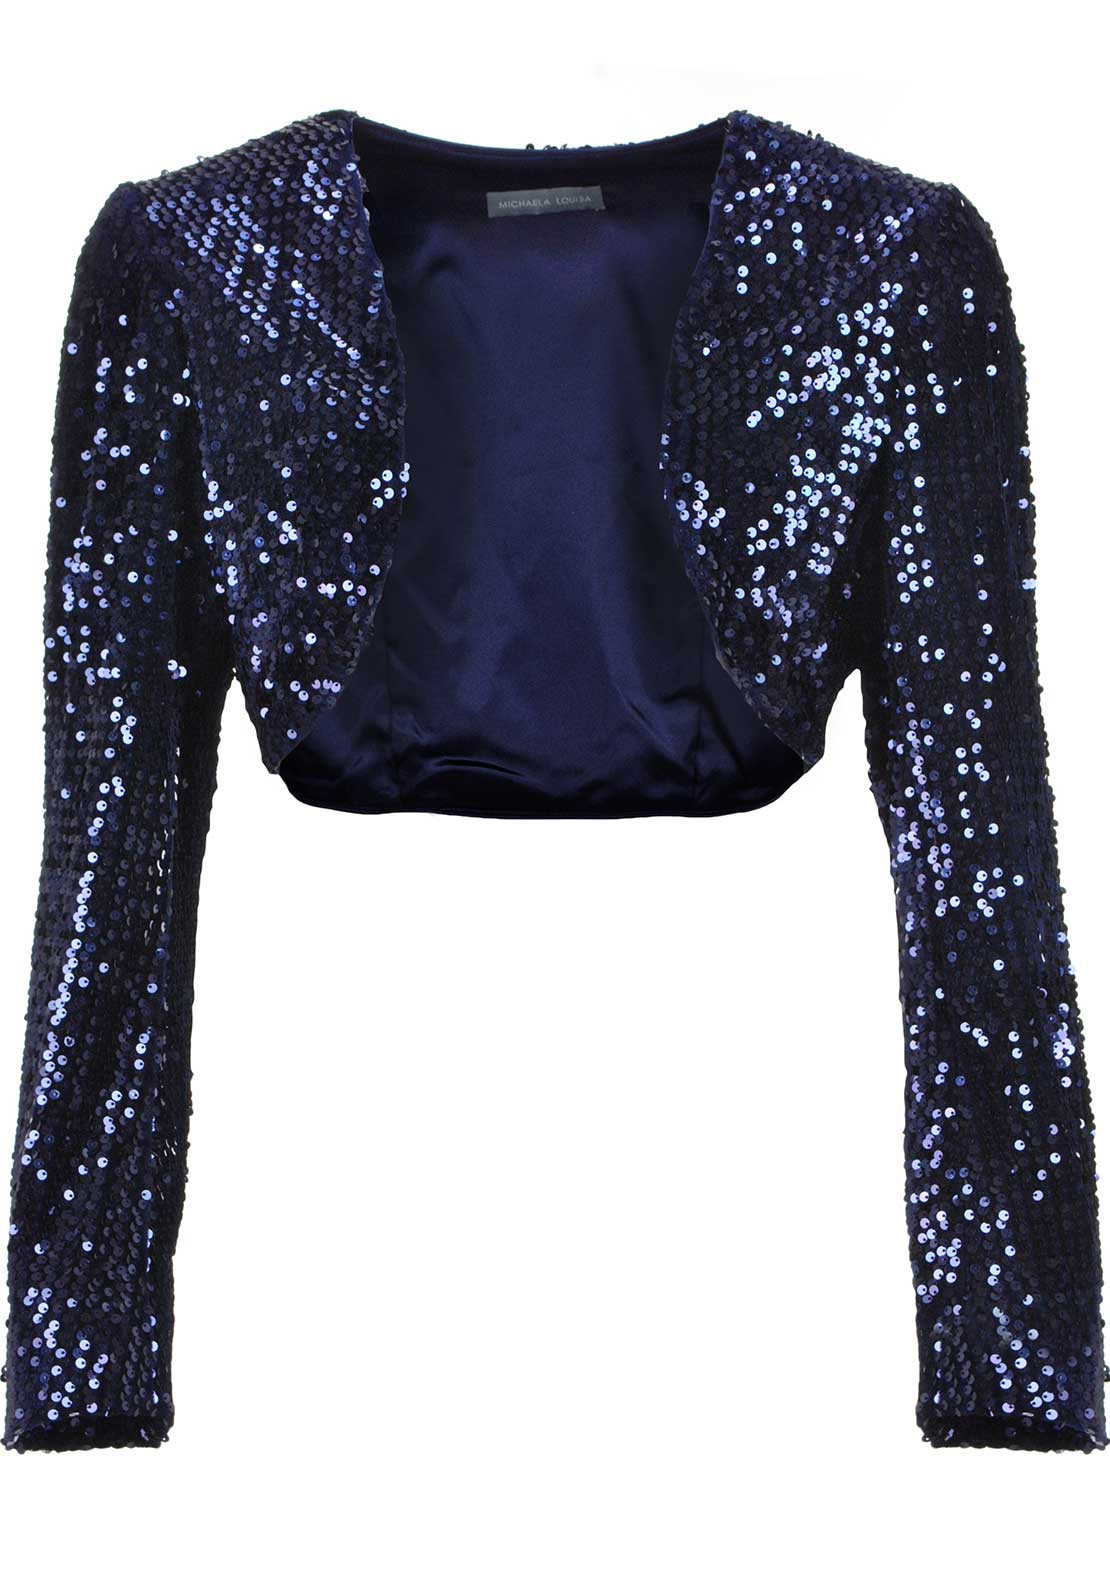 Michaela Louisa Sequin Embellished Velvet Cropped Bolero Jacket, Midnight